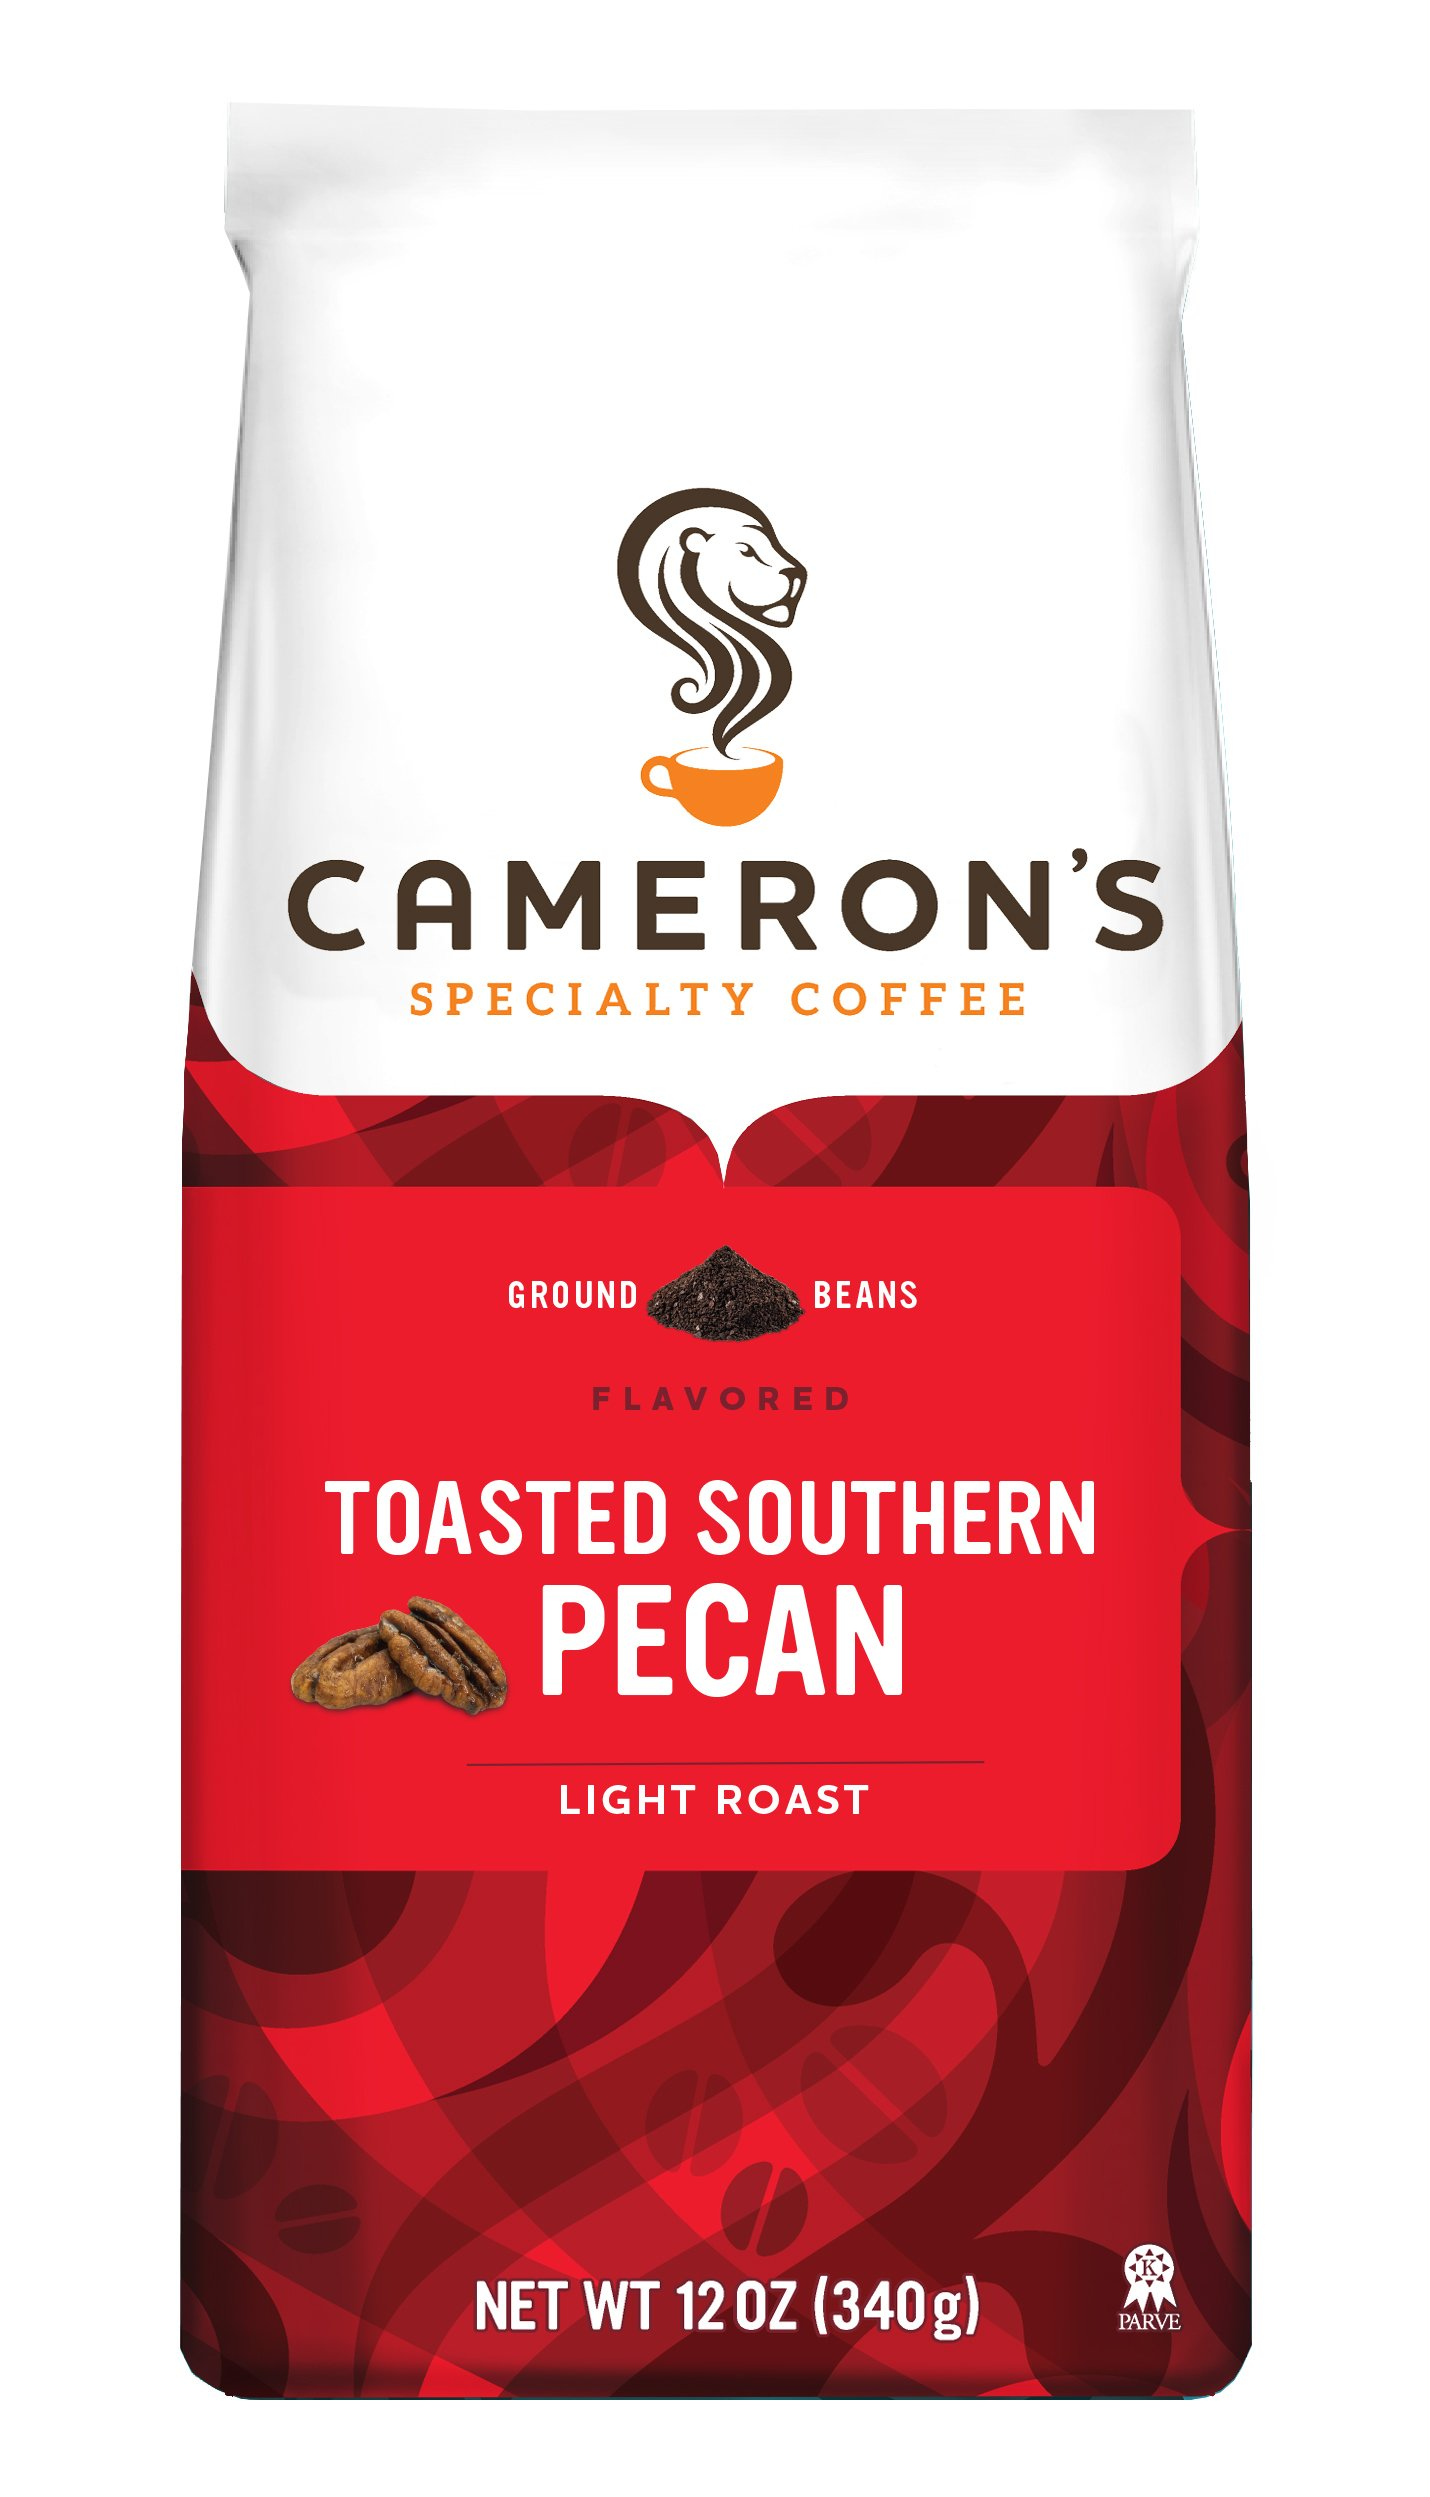 Cameron's Specialty Coffee, Toasted Southern Pecan, 12 Ounce, Ground Coffee, Bag